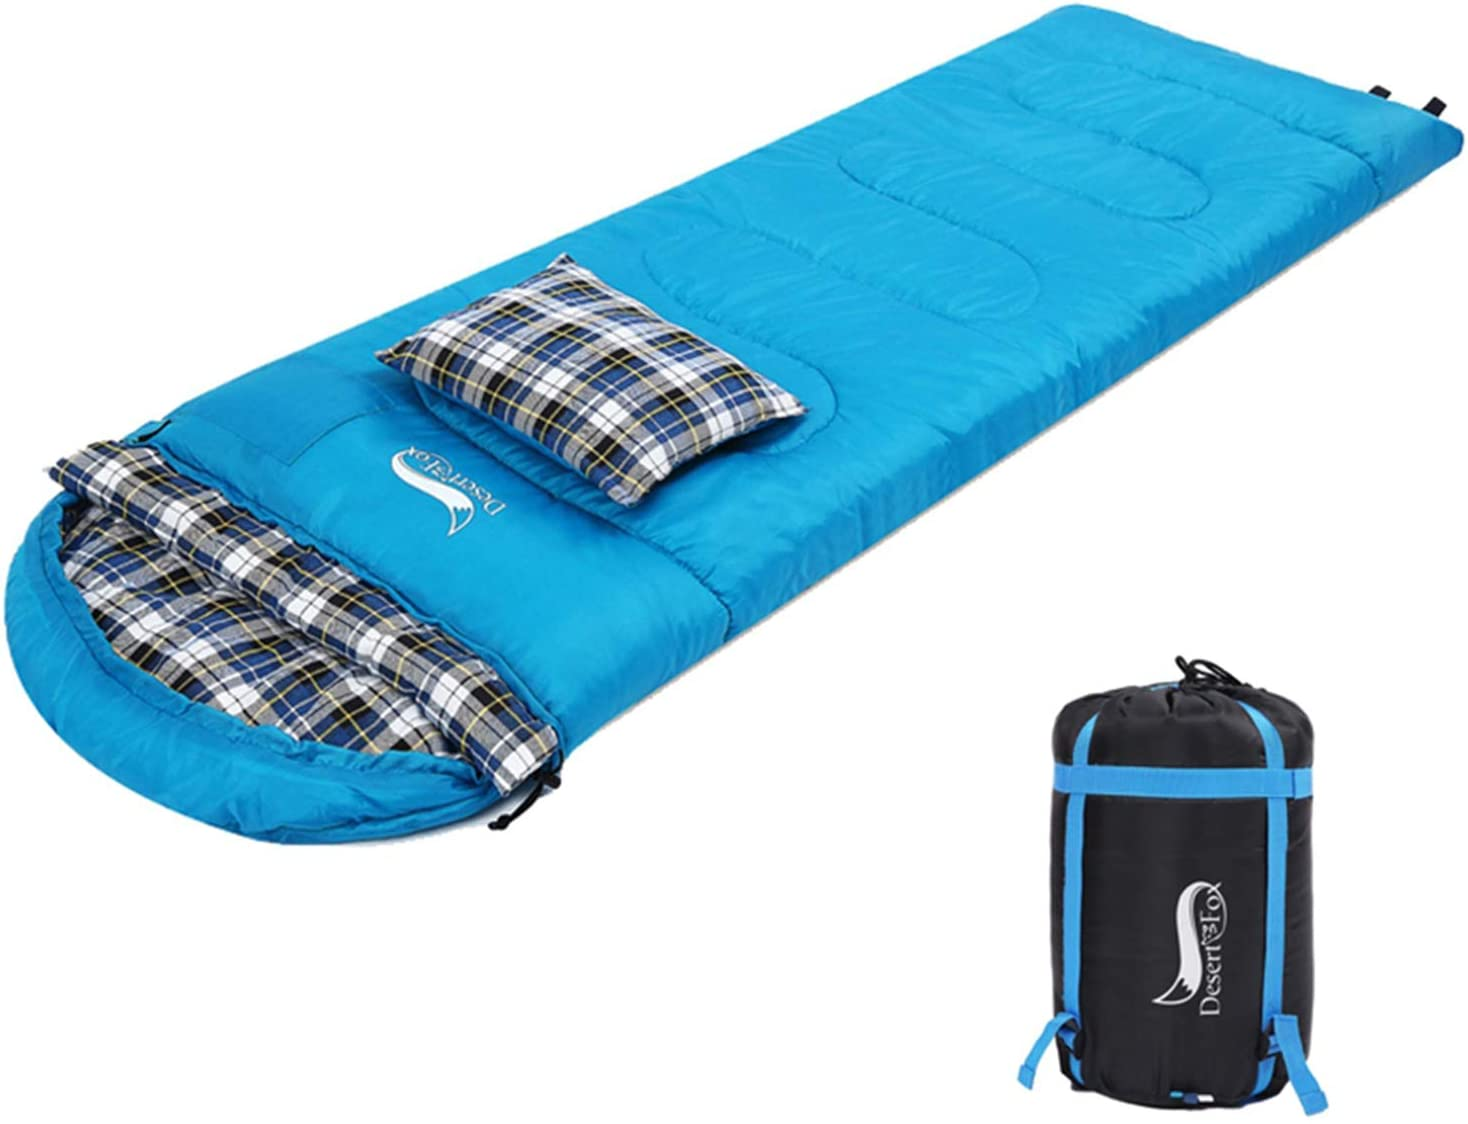 DESERT & FOX Cotton Flannel Sleeping Bags with Pillow, 4 Season Warm & Cold Weather Envelope Compression Sack, Lightweight & Portable Backpacking ...